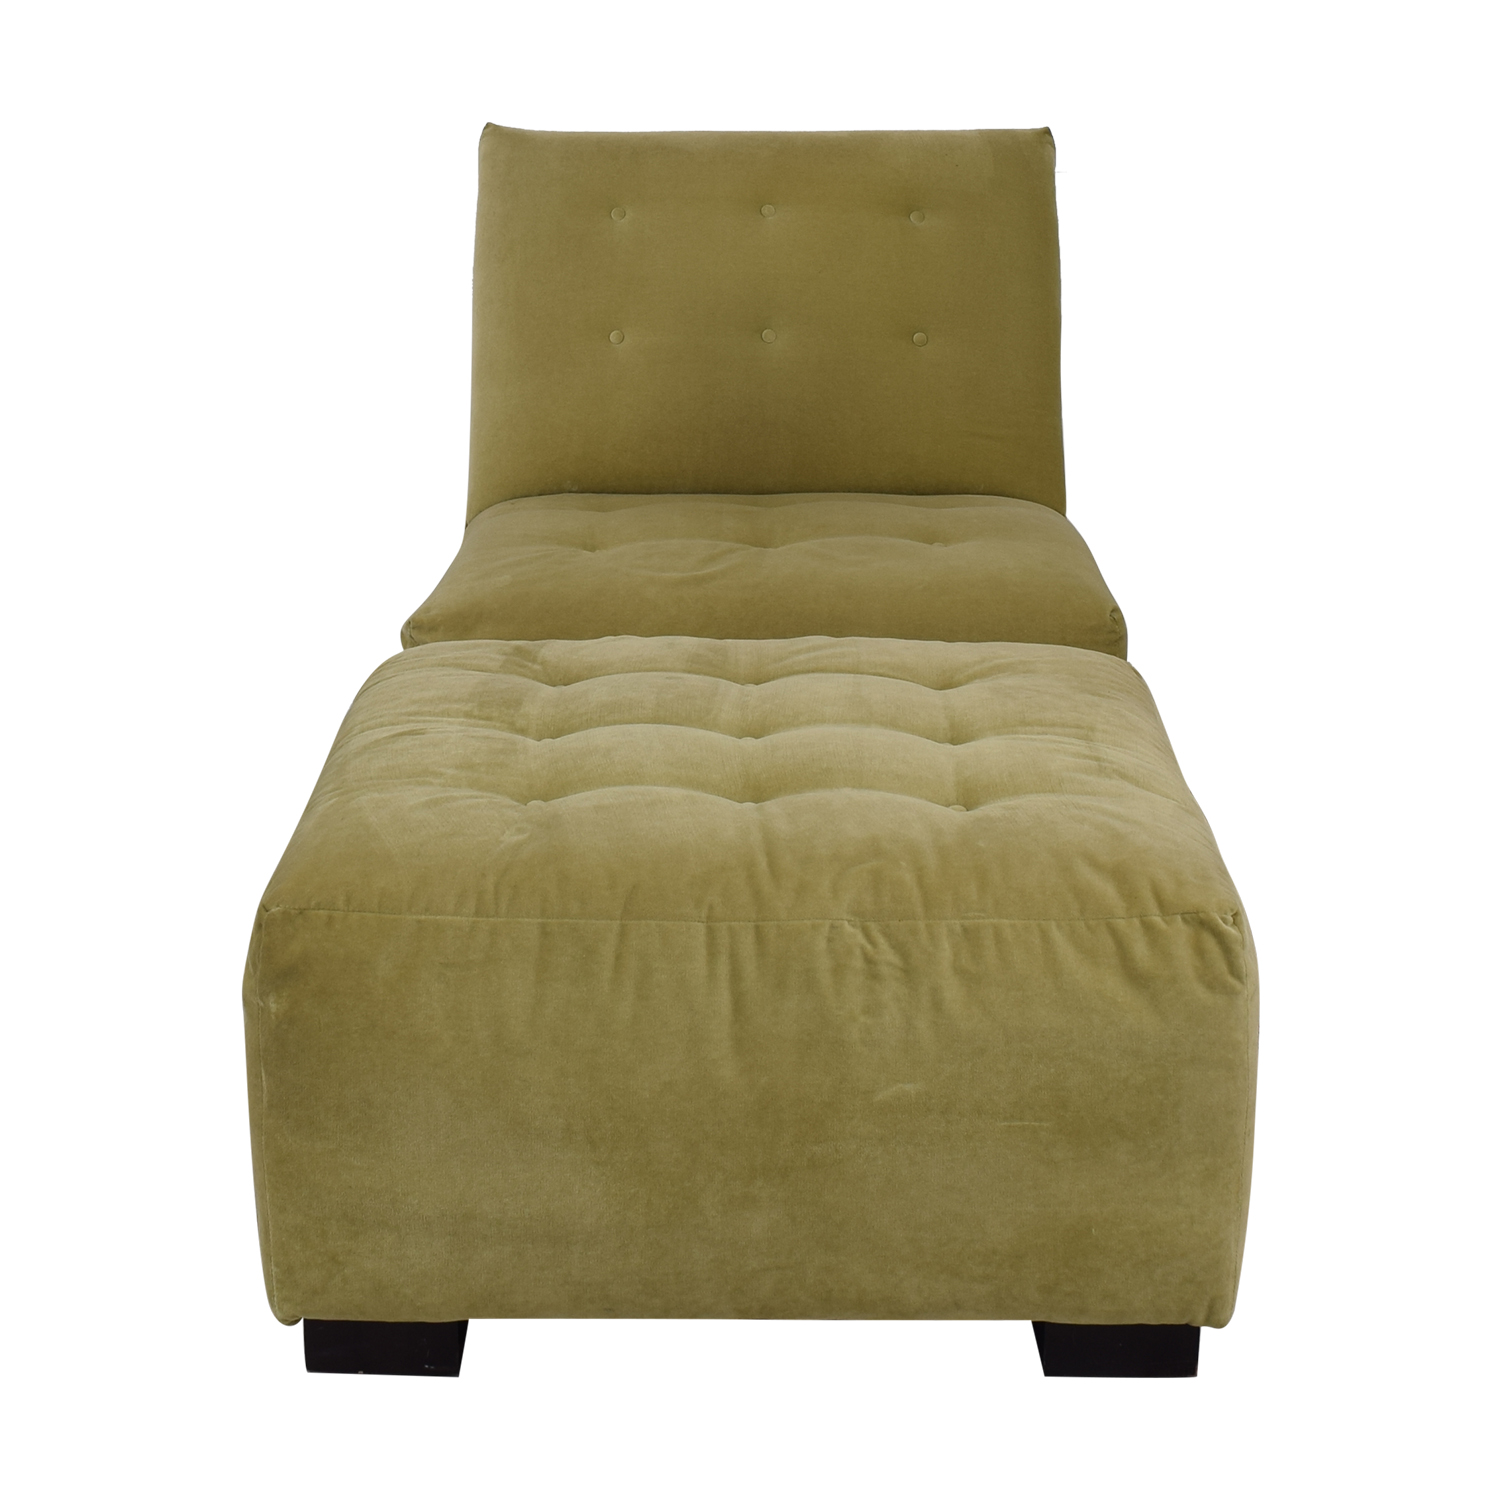 Crate & Barrel Crate & Barrel Sage Green Tufted Lounge Chair & Ottoman coupon